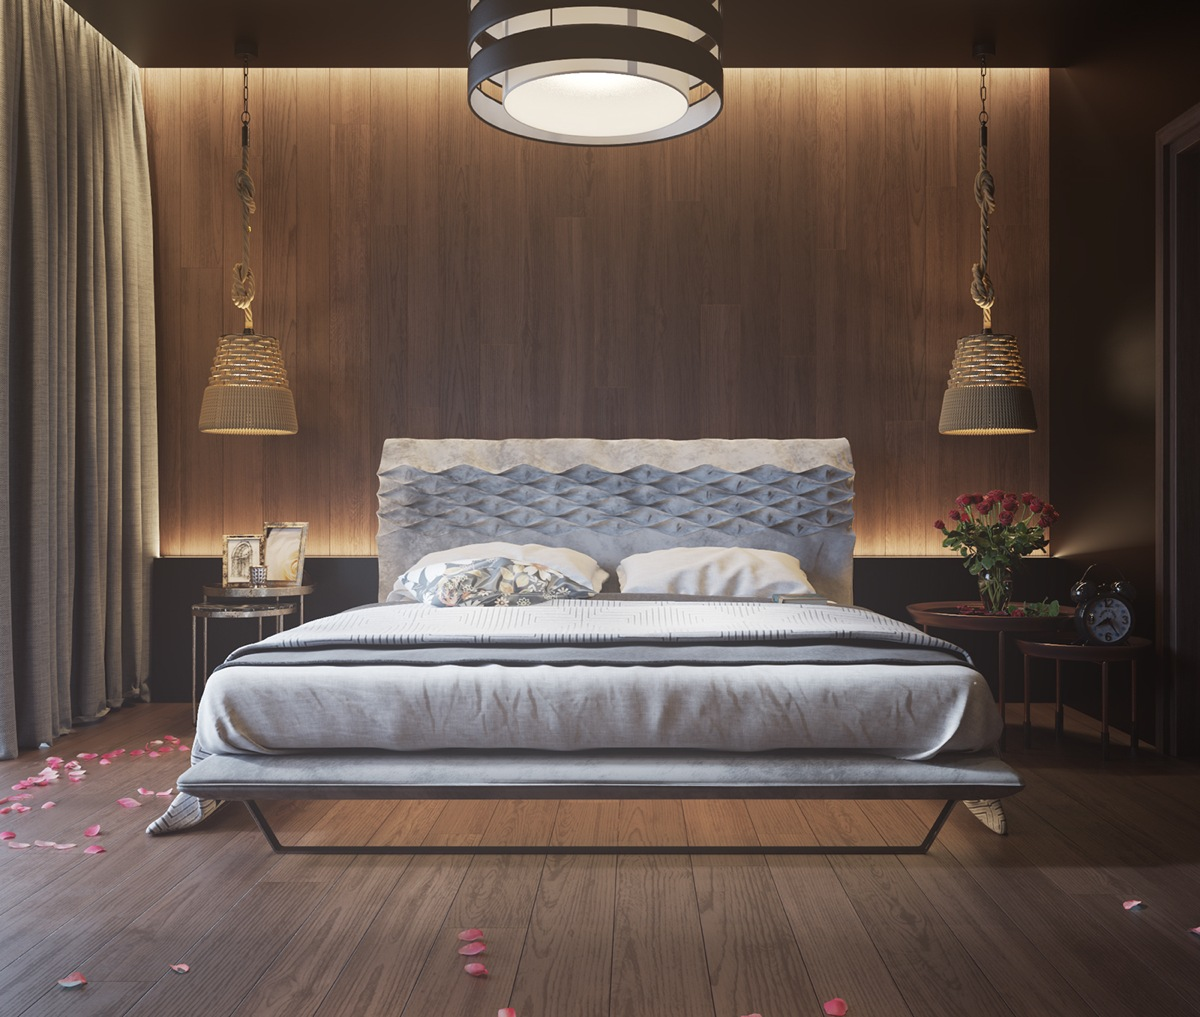 11 ways to make a statement with wood walls in the bedroom - Decoration de mur interieur ...